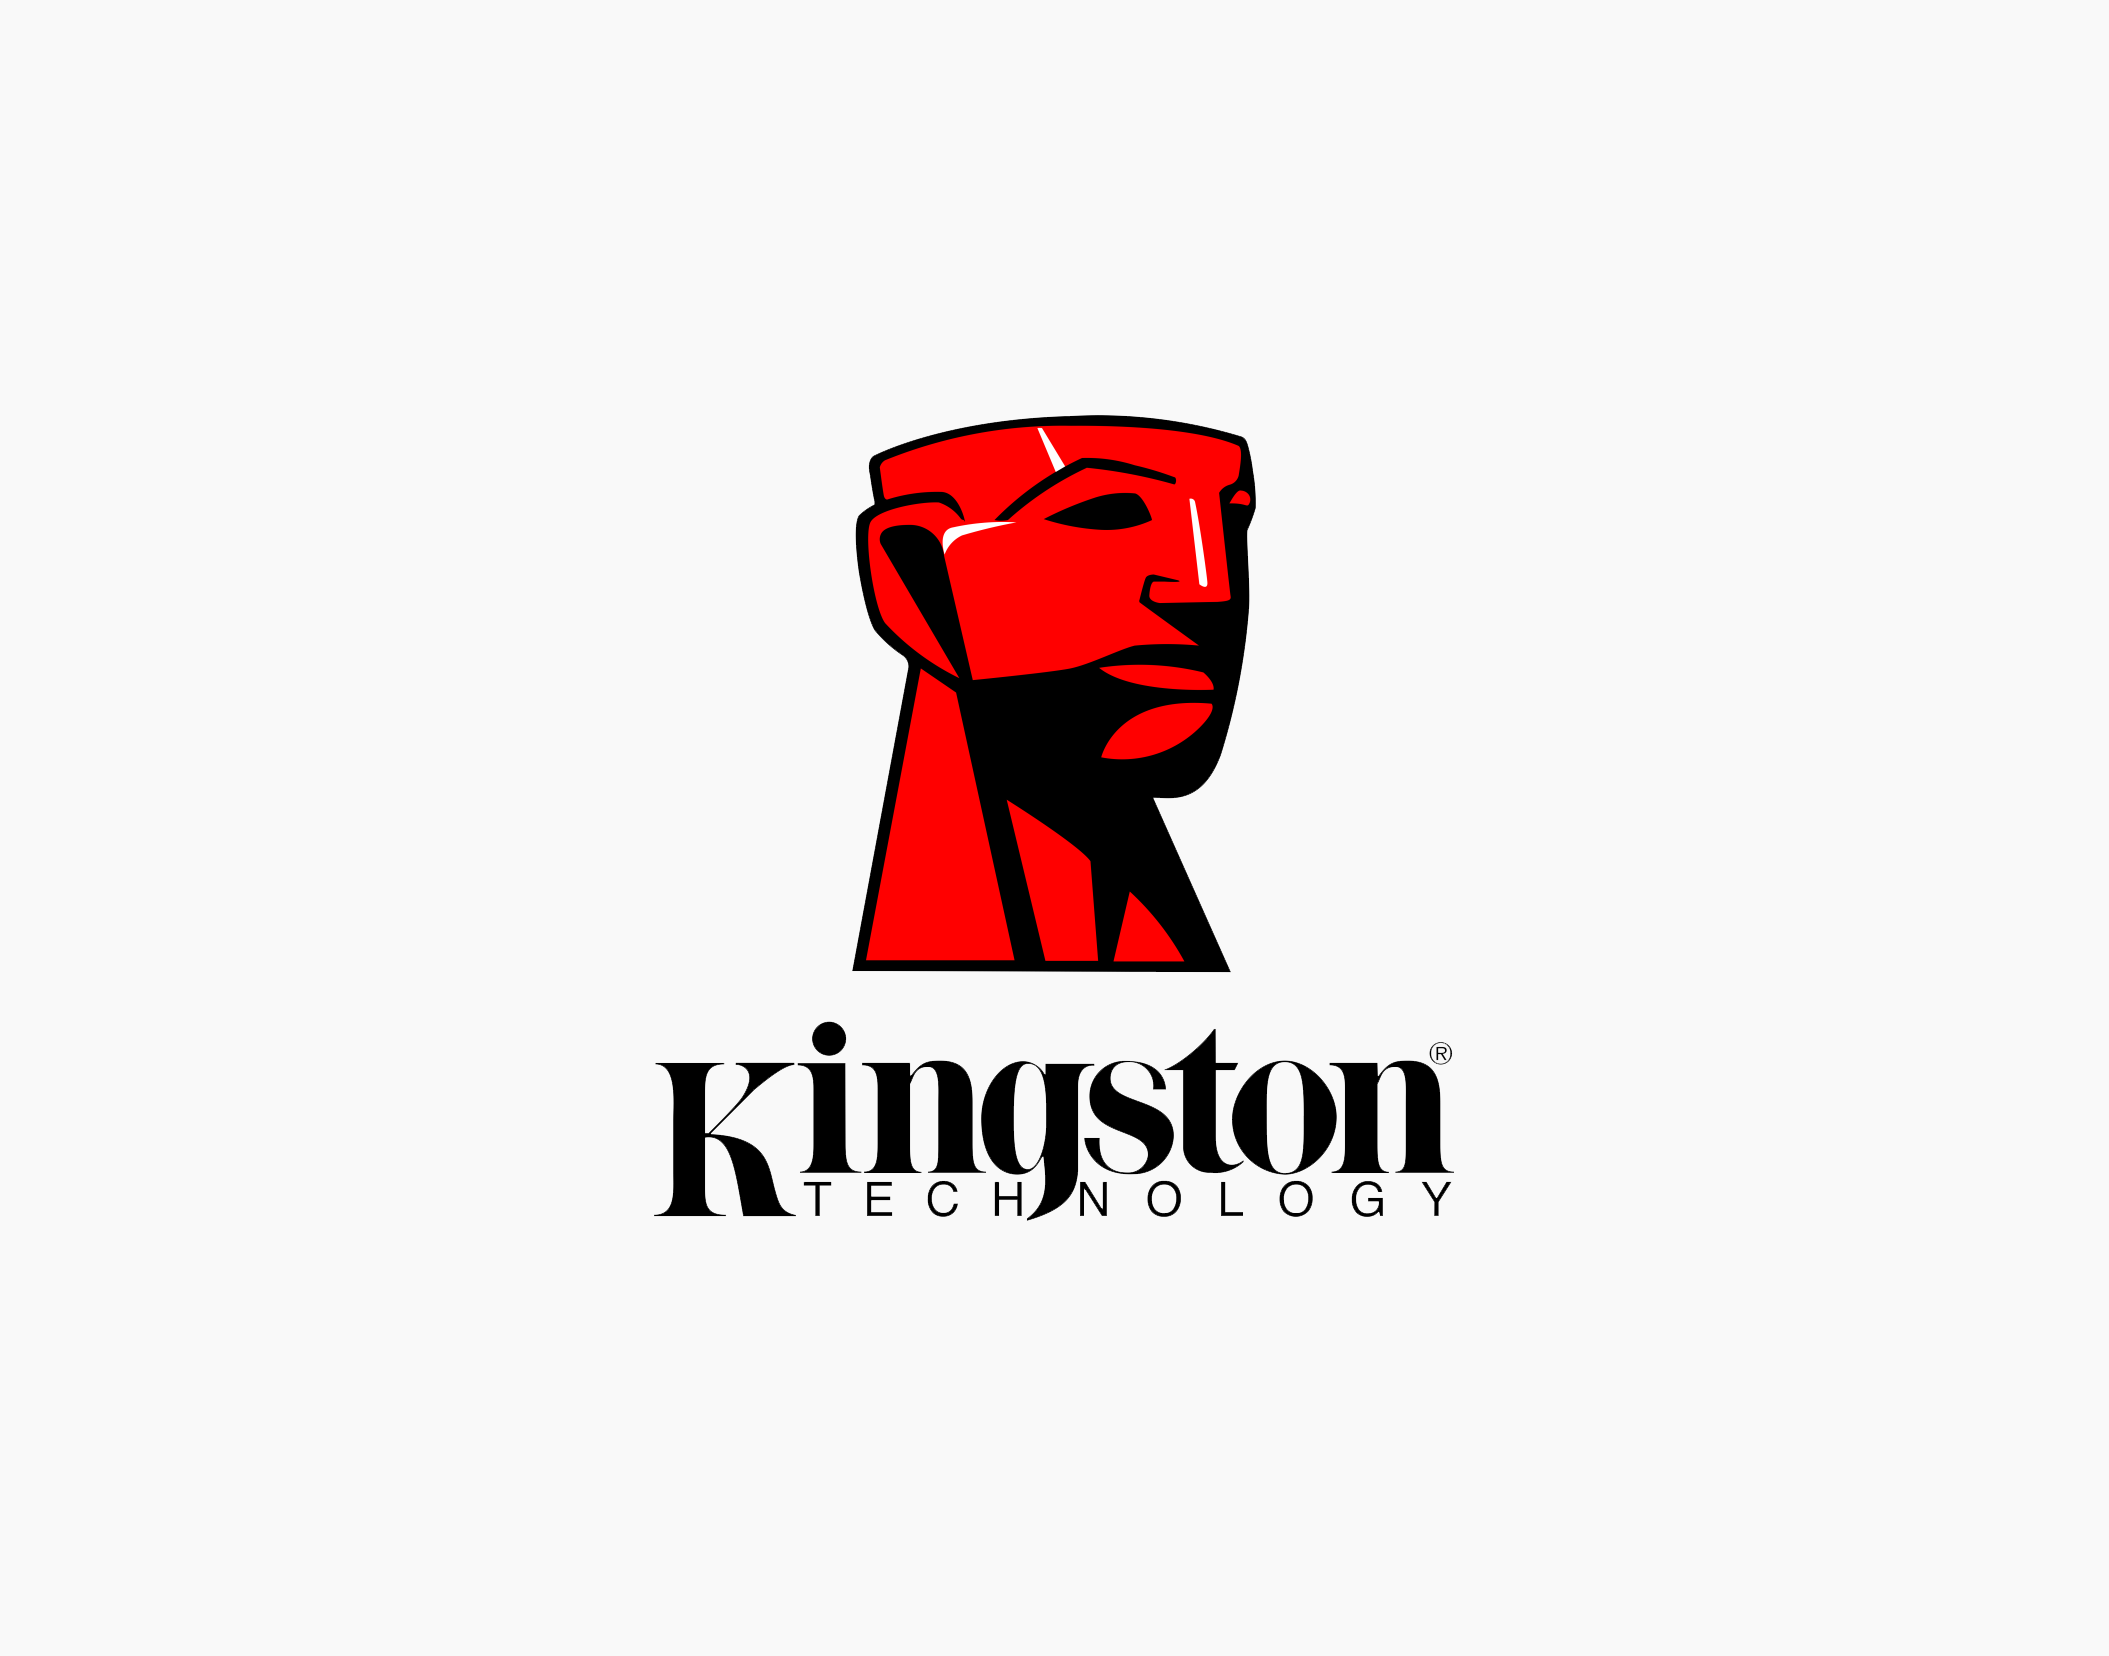 Kingston / configurator of choice